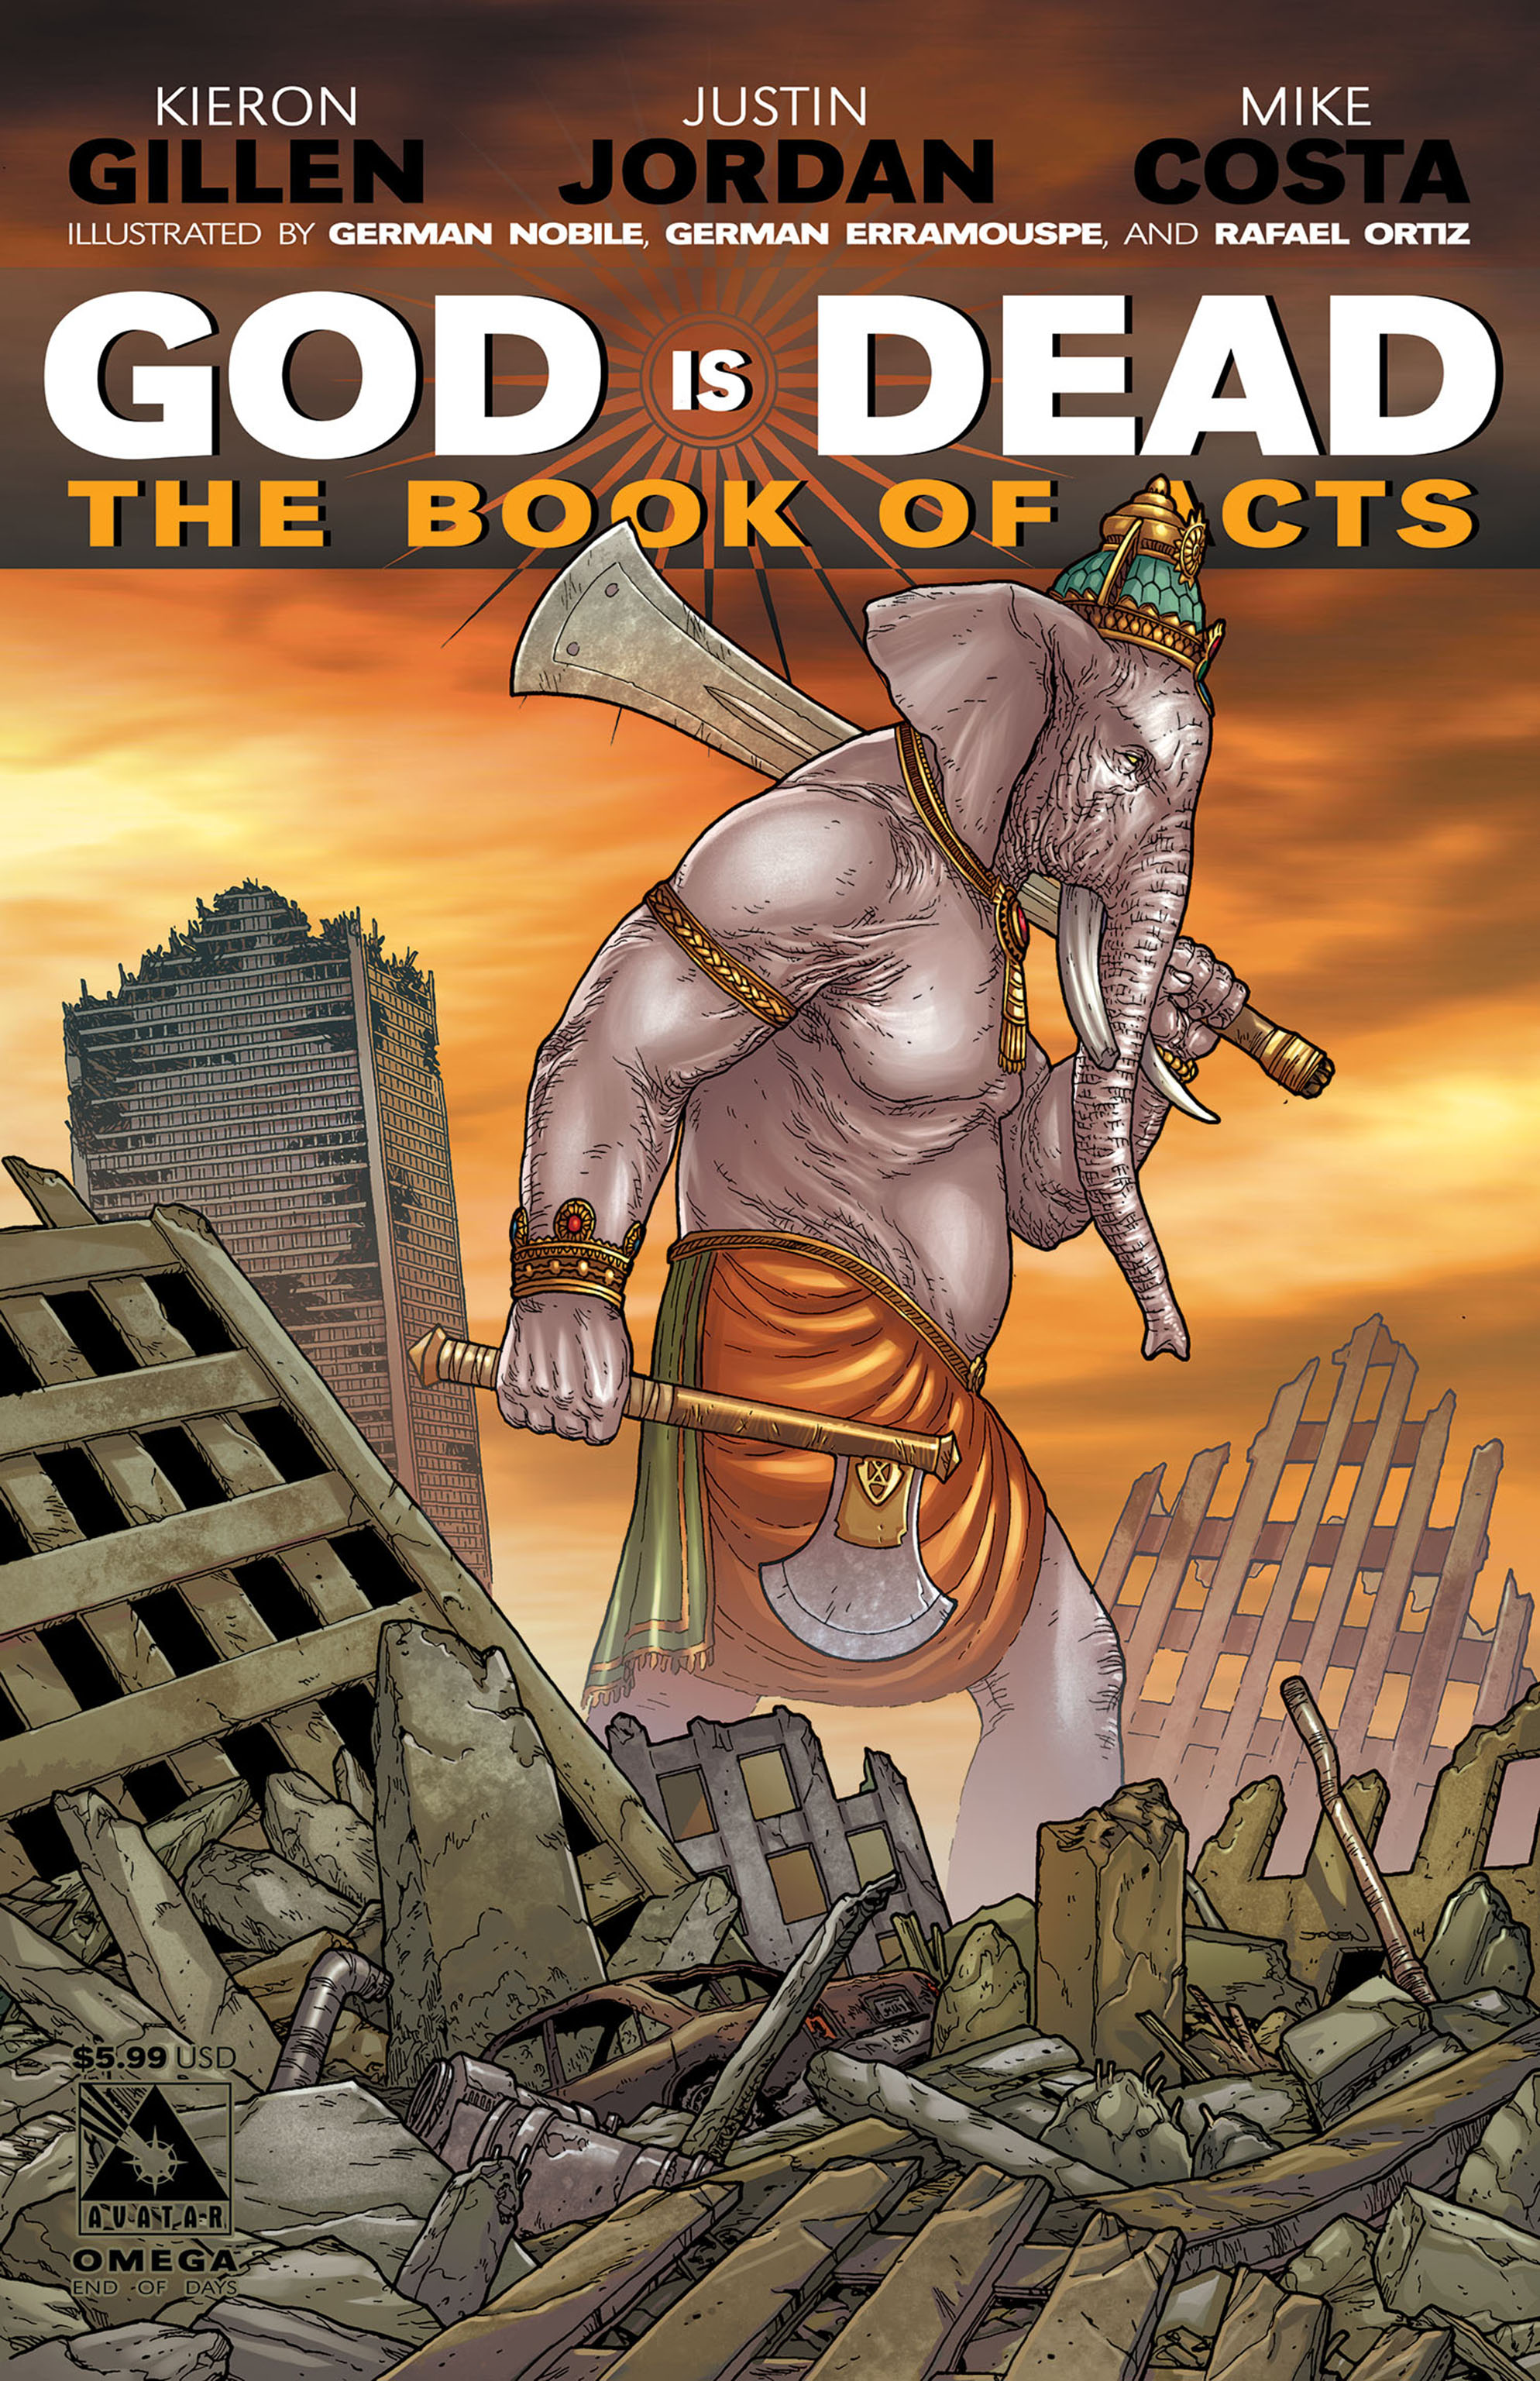 Read online God is Dead: Book of Acts comic -  Issue # Omega - 3